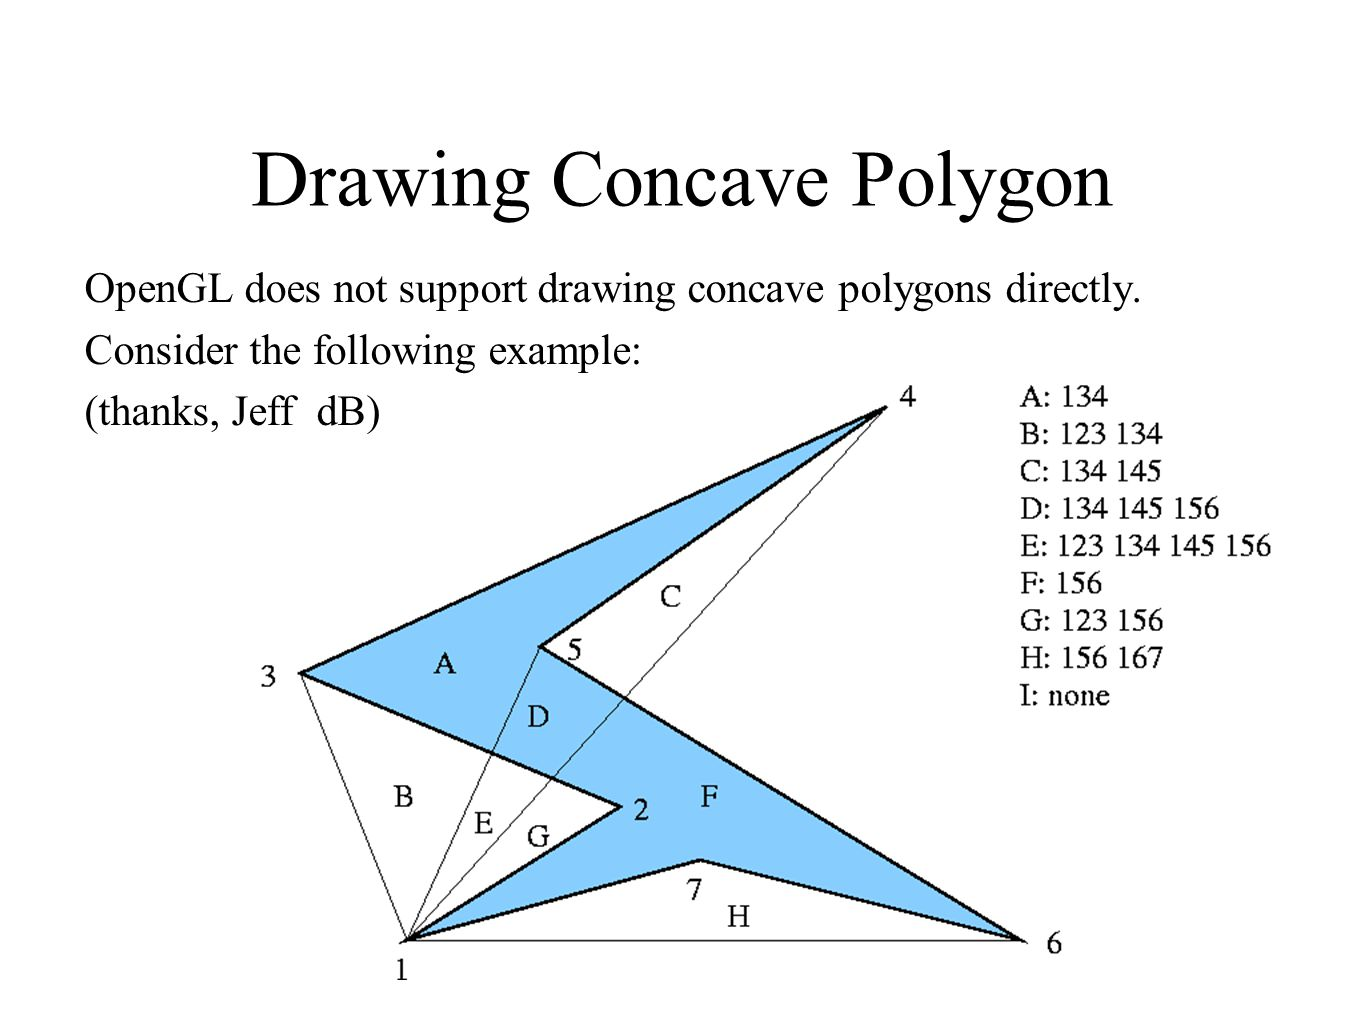 Drawing Concave Polygon OpenGL does not support drawing concave polygons directly. Consider the following example: (thanks, Jeff dB)